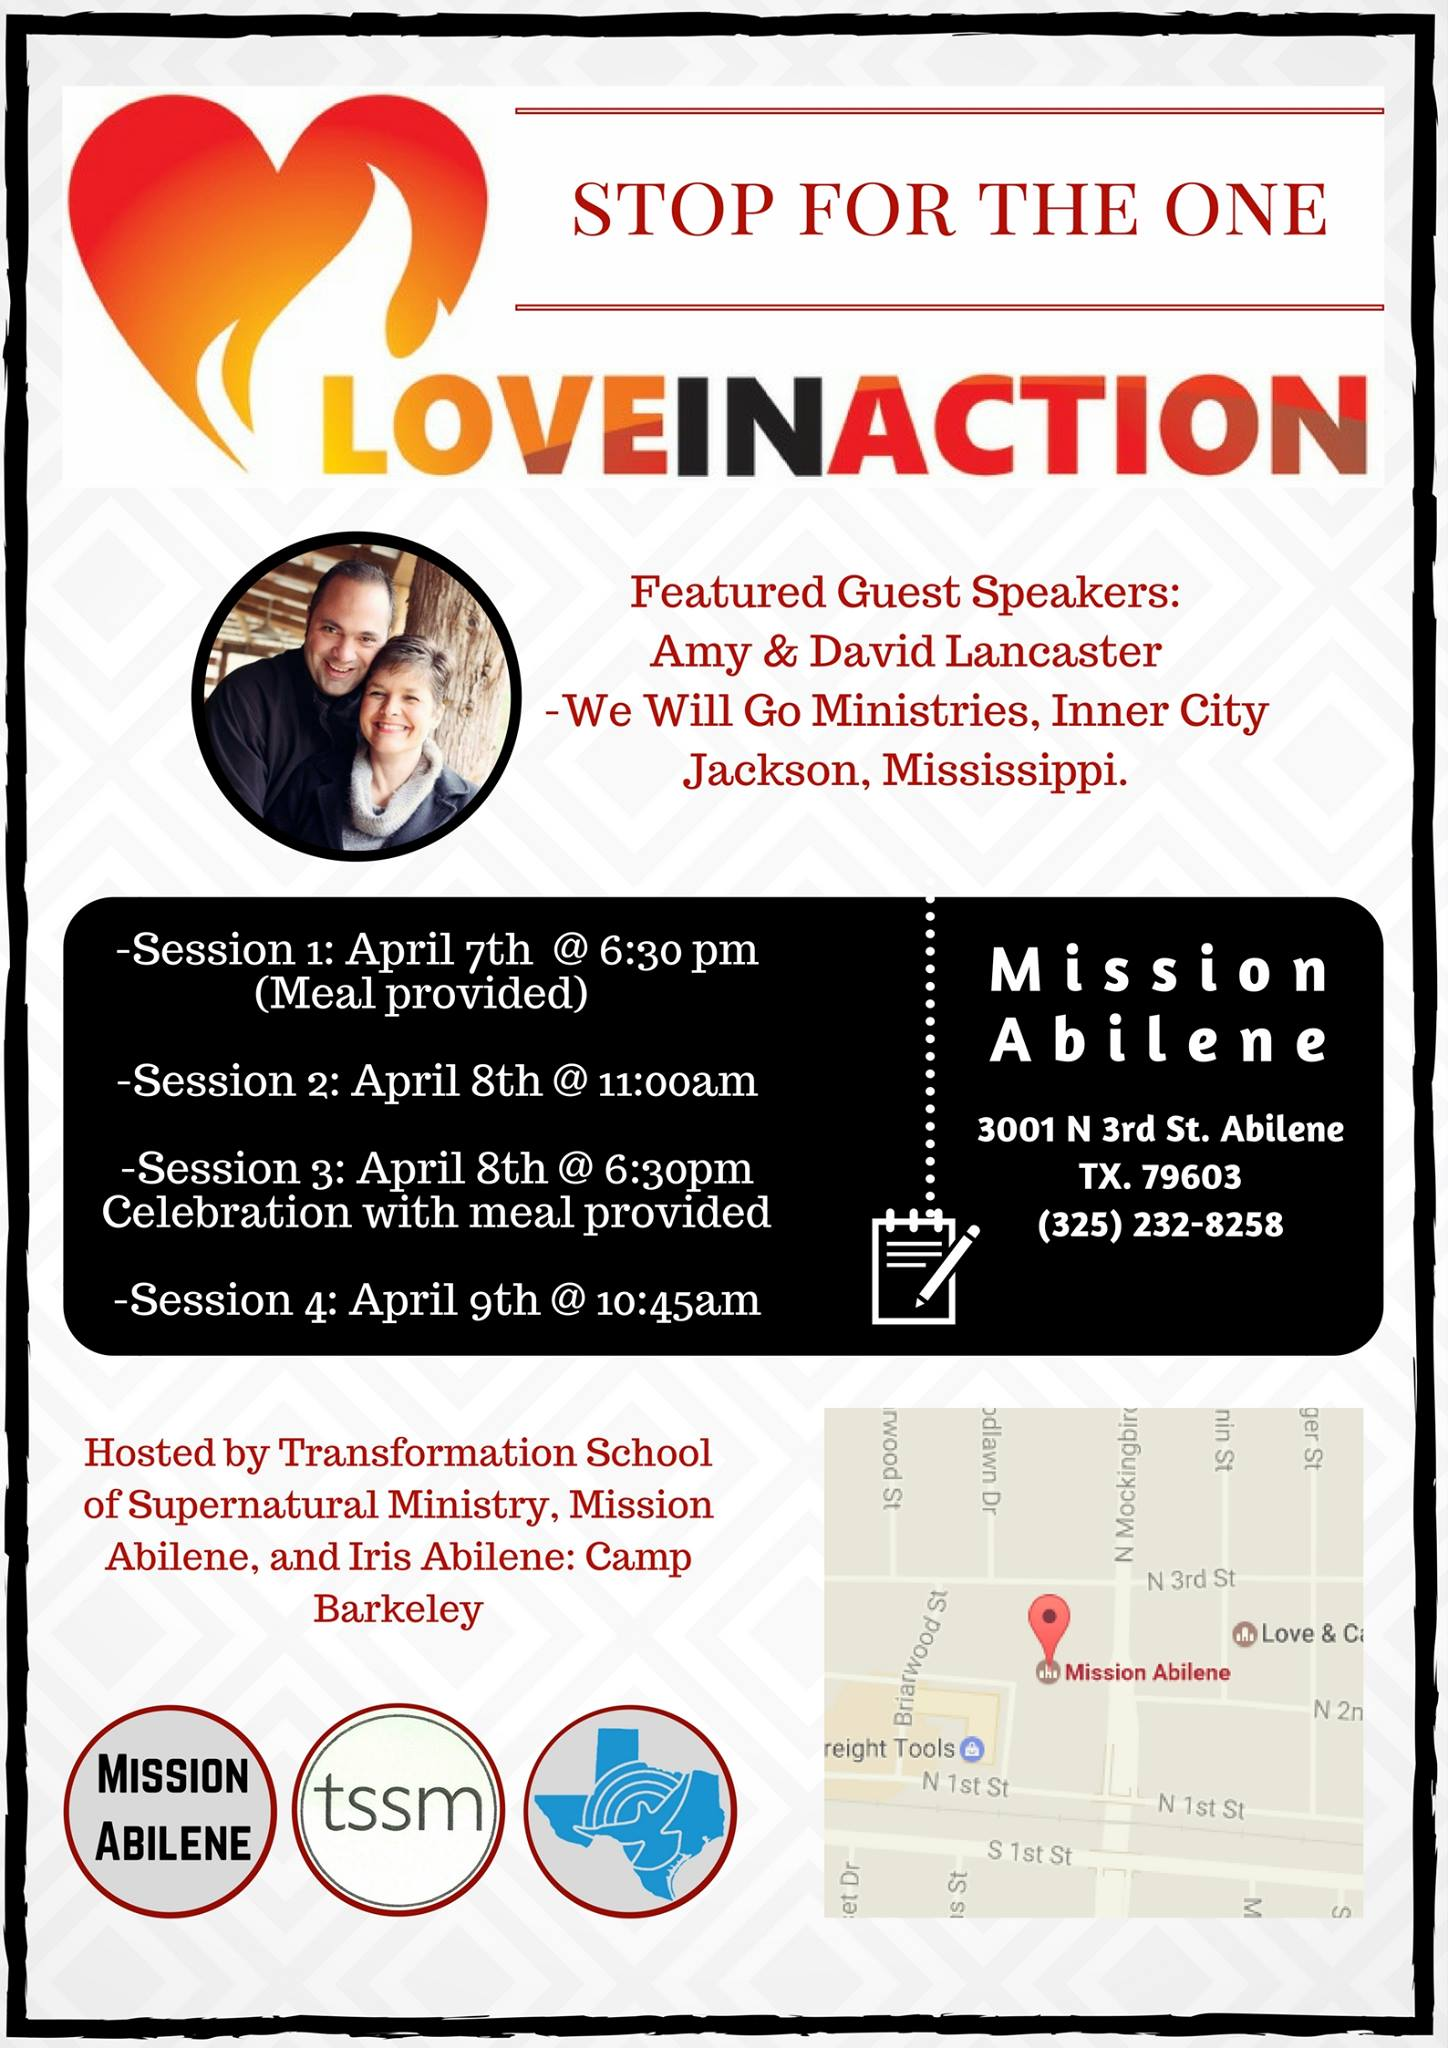 love in action mobilize love abilene texas